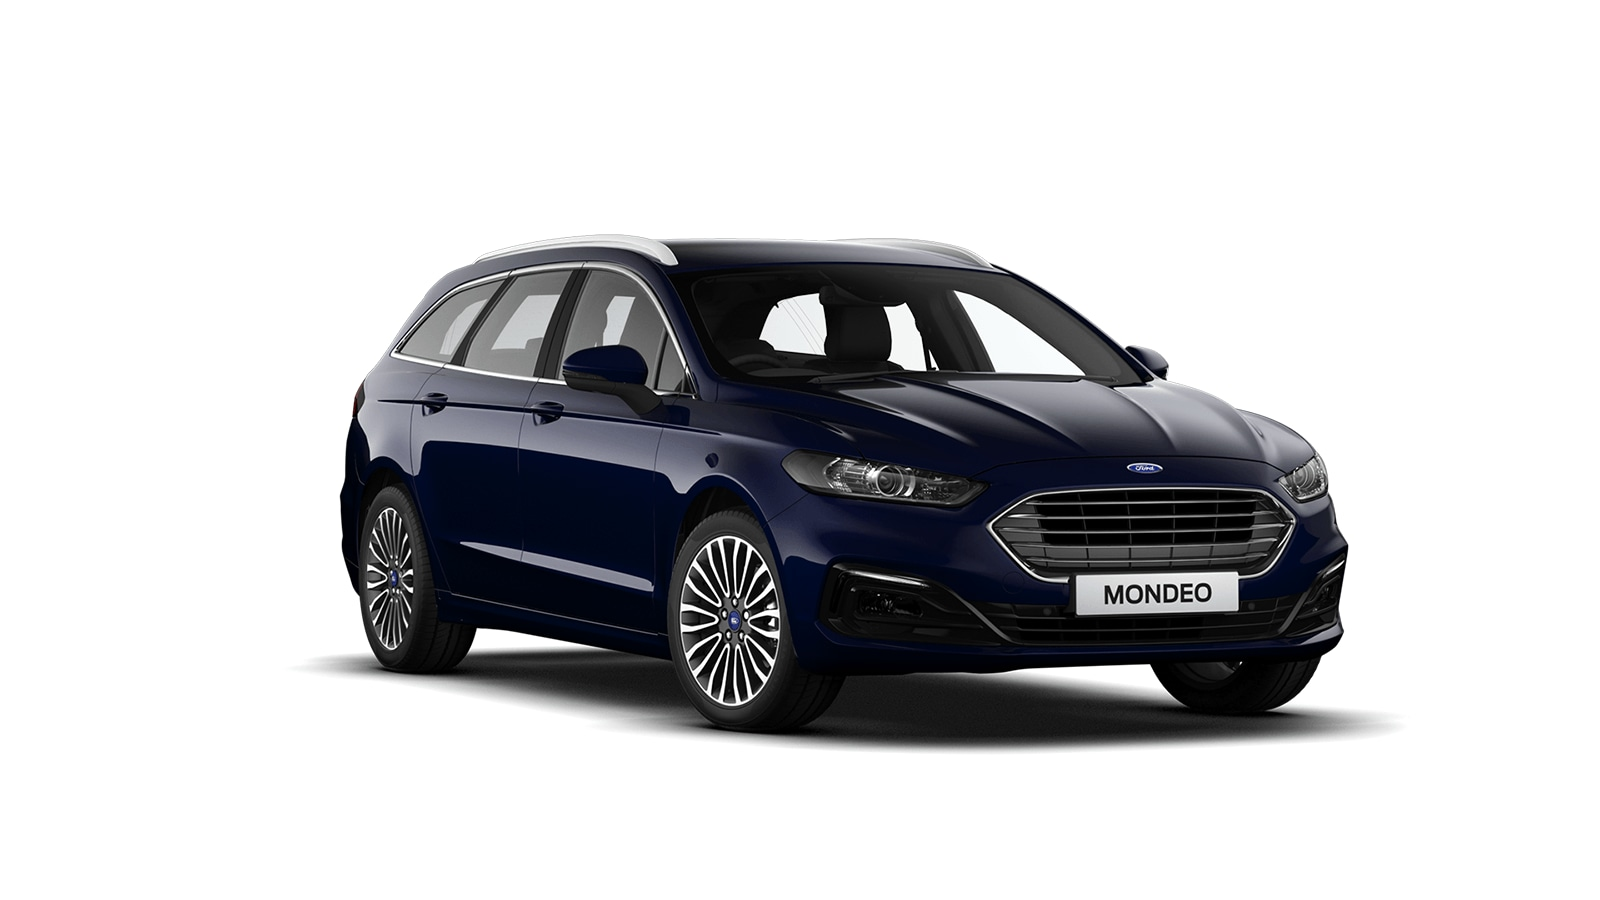 New Ford Mondeo Hybrid at Lamberts Garage